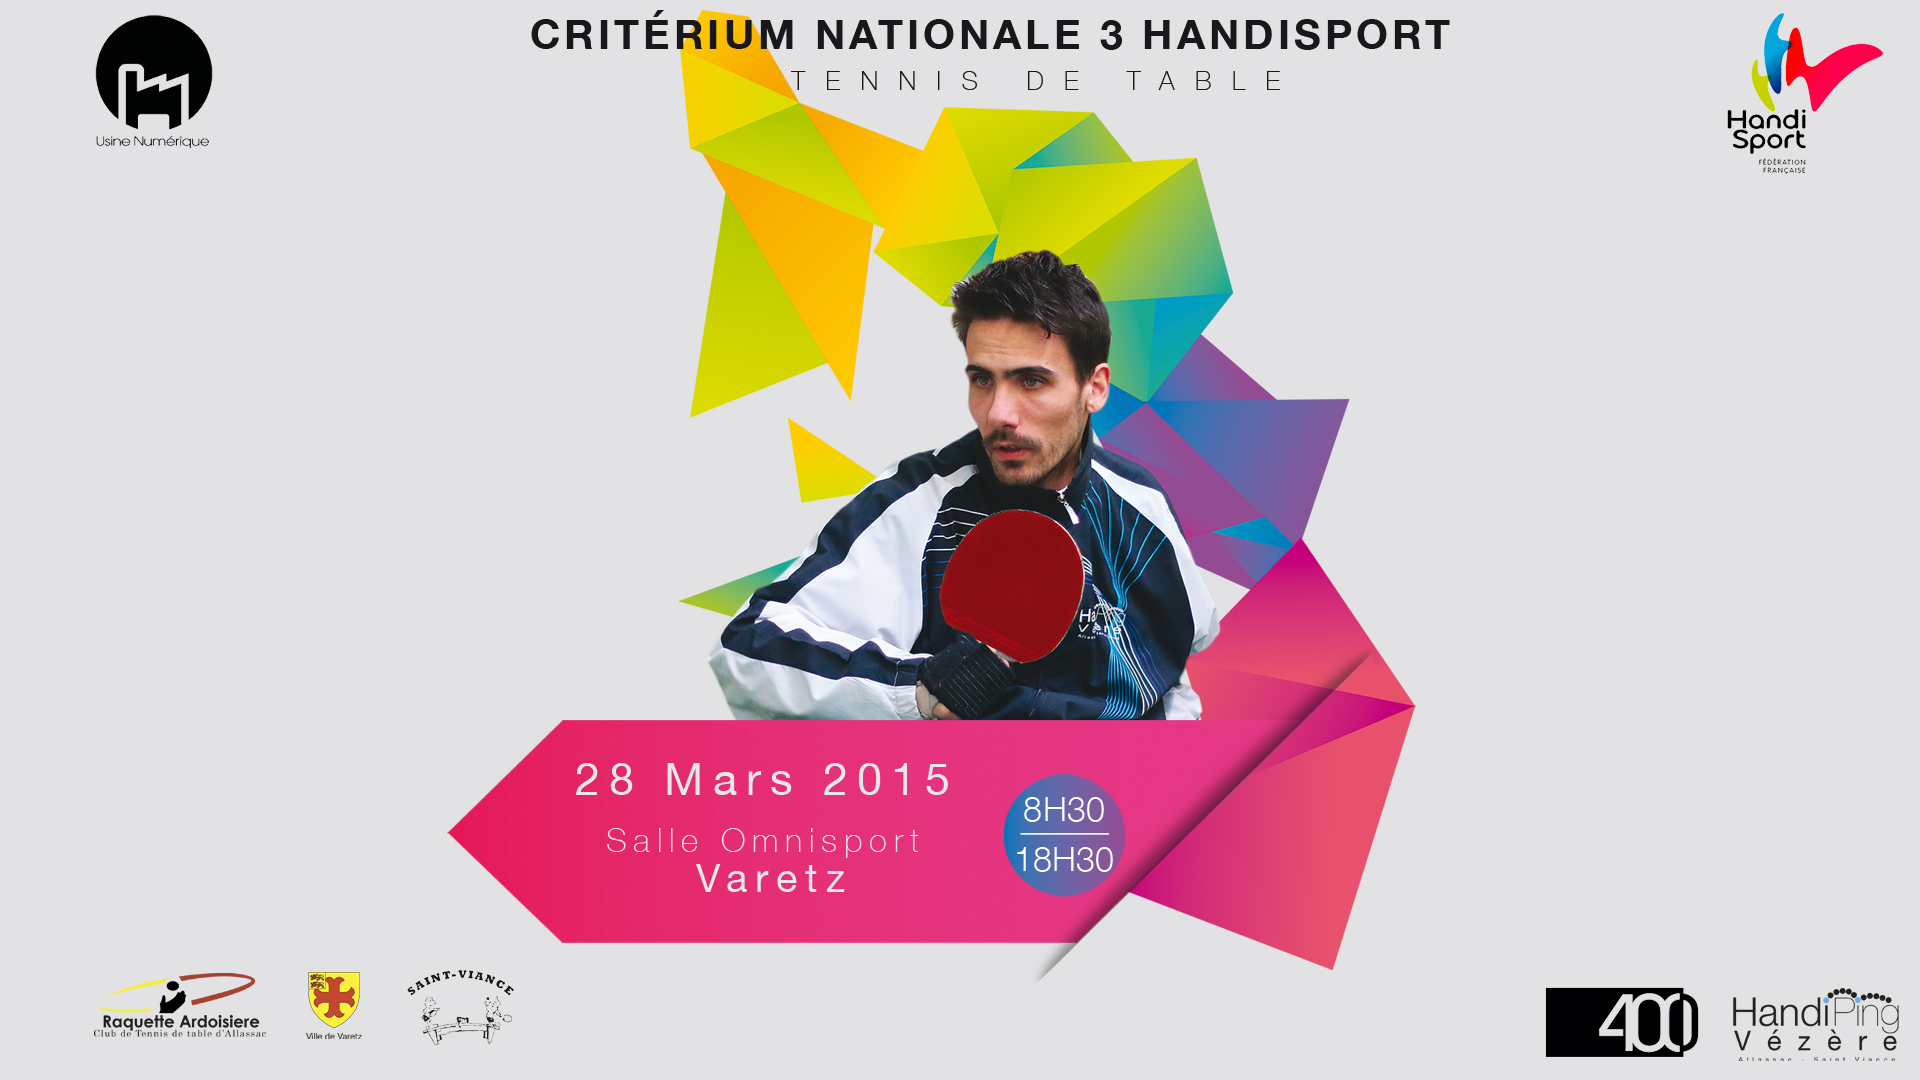 Critérium National Tennis de Table Handisport